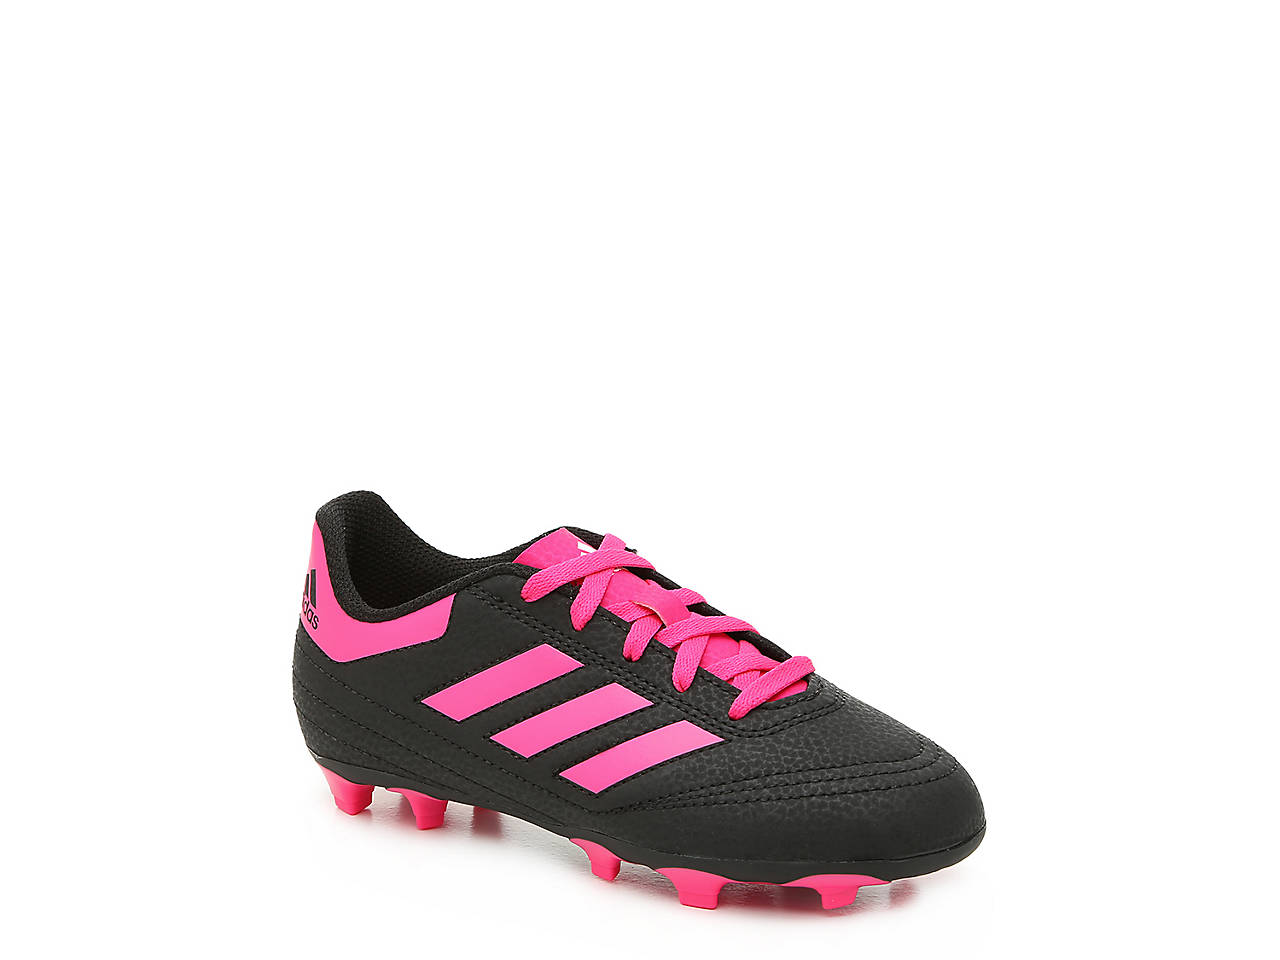 a487541087e adidas Goletto VI FG J Toddler   Youth Soccer Cleat Kids Shoes